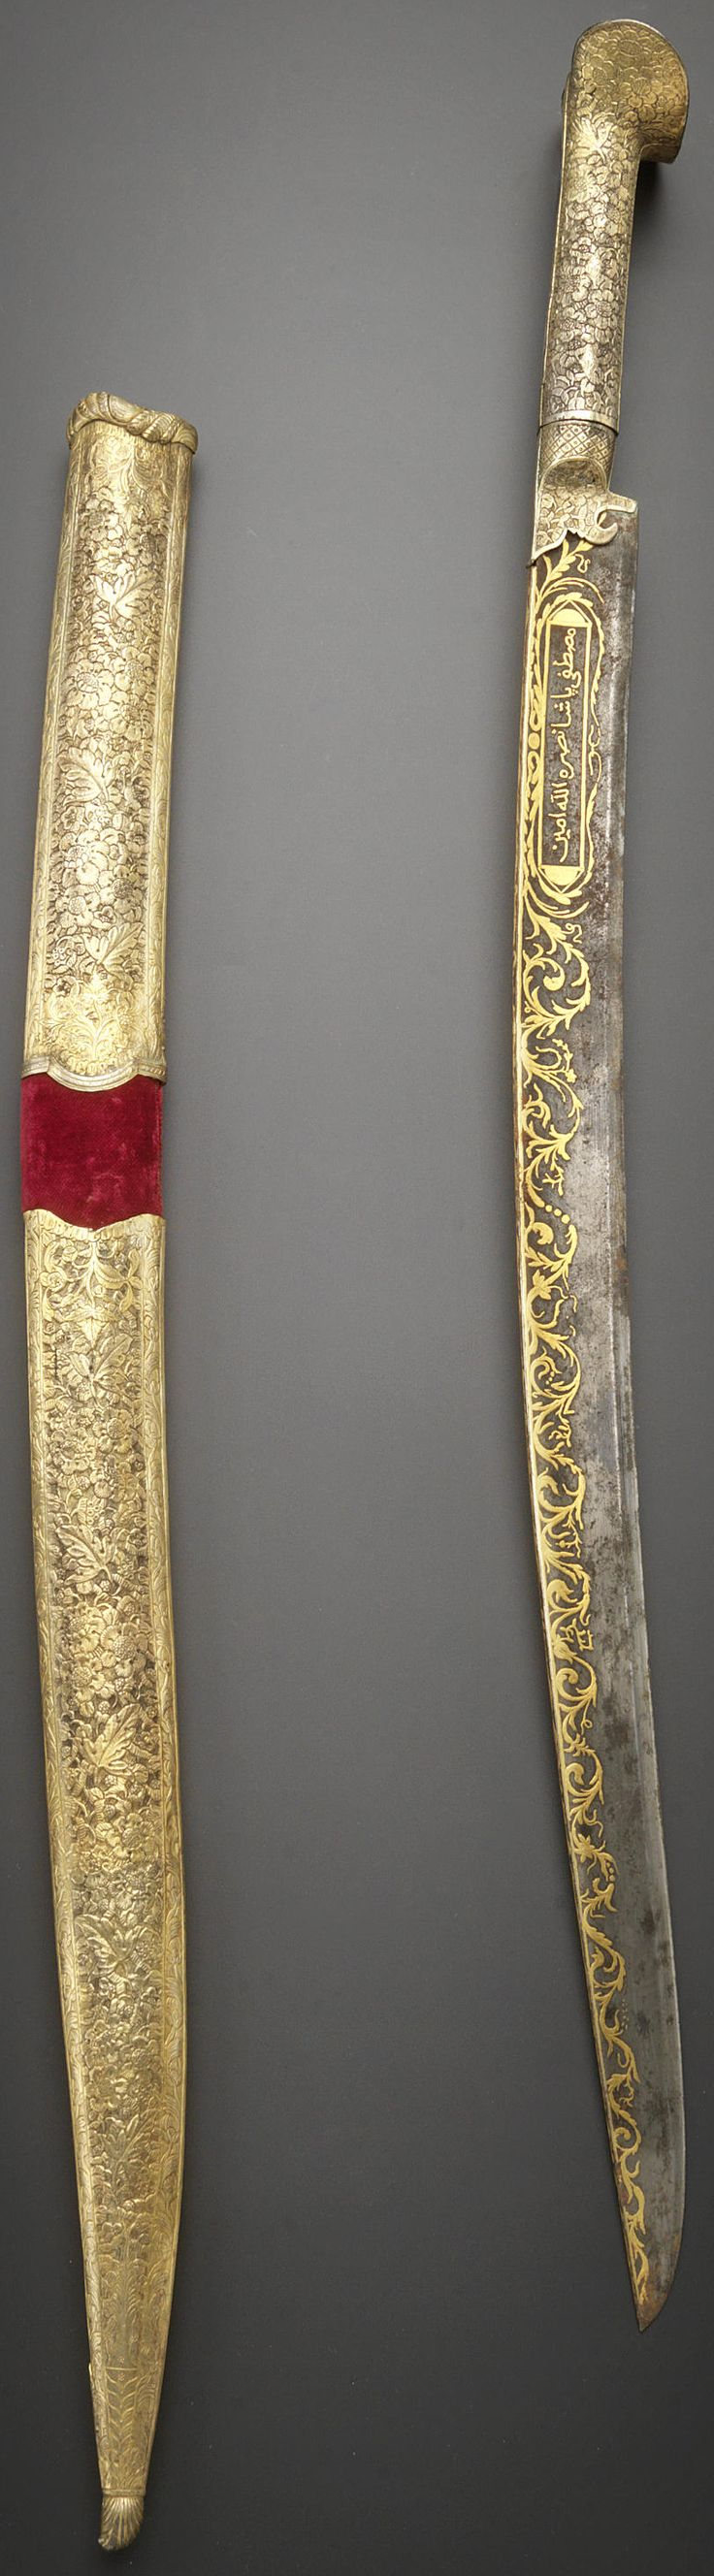 Ottoman yataghan / yatagan, circa 1800, slightly curving blade and tapering point, the spine and sides decorated with bands of gold overlay consisting of undulating leafy and floral vines, one side with an inscription-filled cartouche, the silver-gilt hilt and scabbard with repousse decoration consisting of profuse floral motifs, 76 cm. long. The inscriptions comprise: mustapha pasha nasarahu allal amin, 'Mustapha Pasha may Gold help him, Amen!'. www.ismailtuluce.com